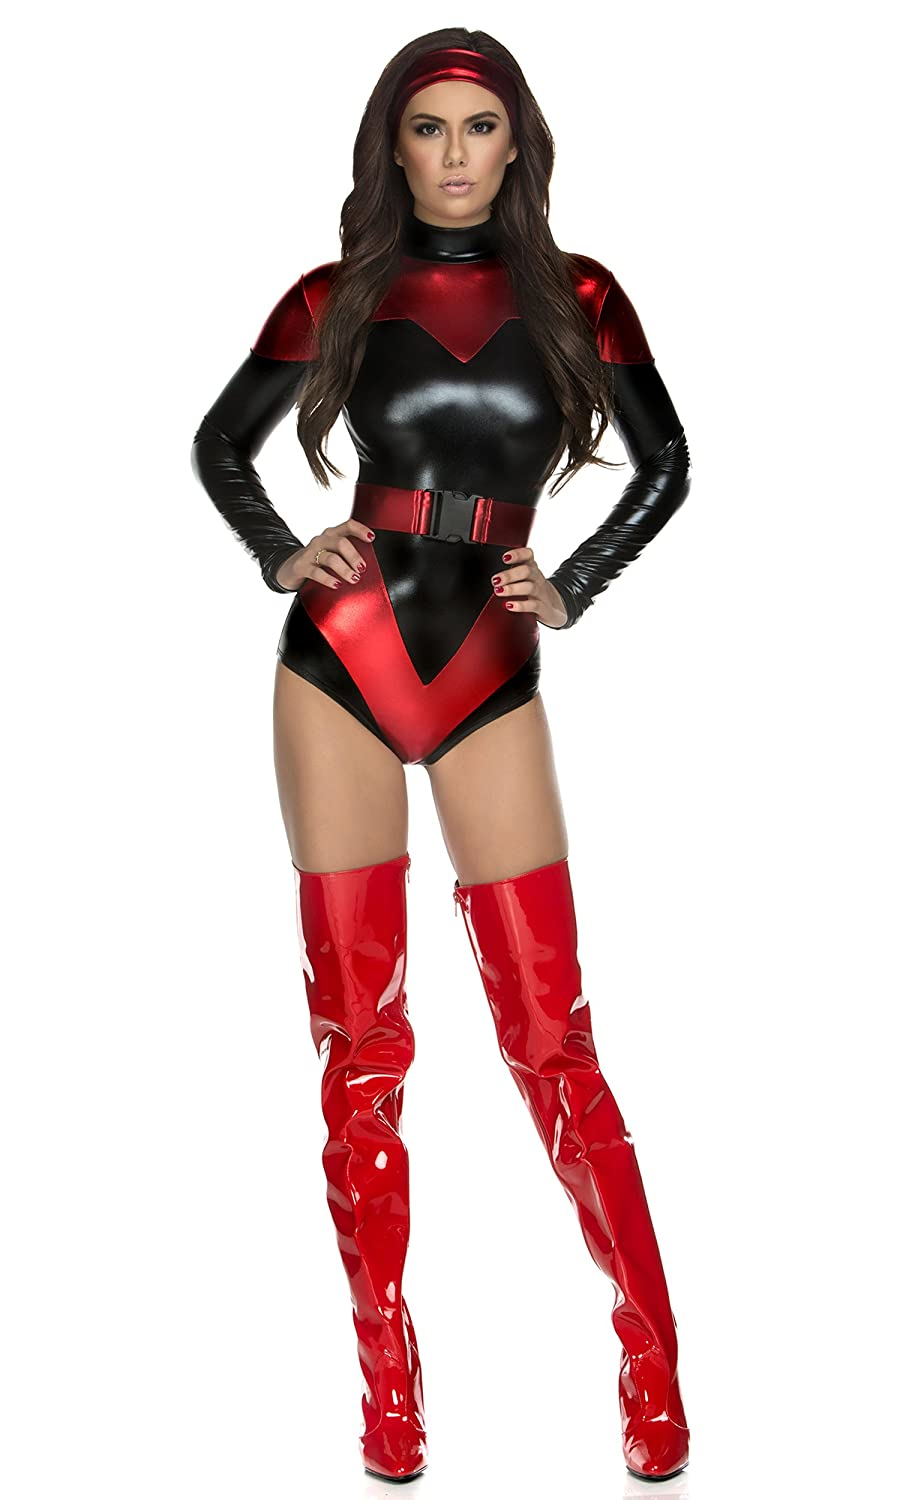 Amazon.com Forplay Womenu0027s Venomous Villain Superhero Bodysuit Headband and Belt Clothing  sc 1 st  Amazon.com & Amazon.com: Forplay Womenu0027s Venomous Villain Superhero Bodysuit ...